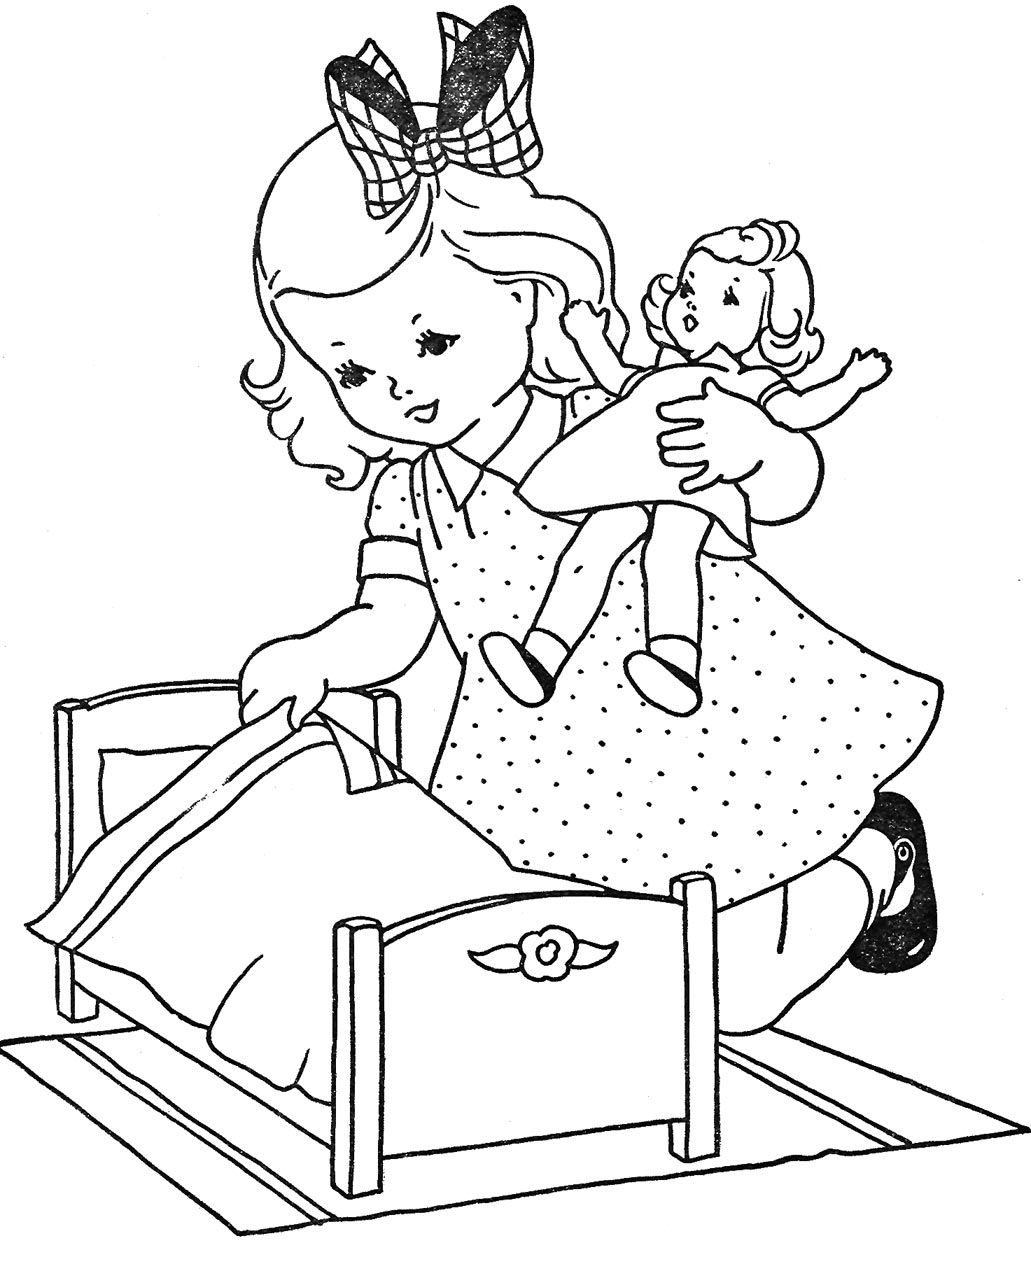 coloring kids clipart make any picture a coloring page with ipiccy ipiccy clipart kids coloring